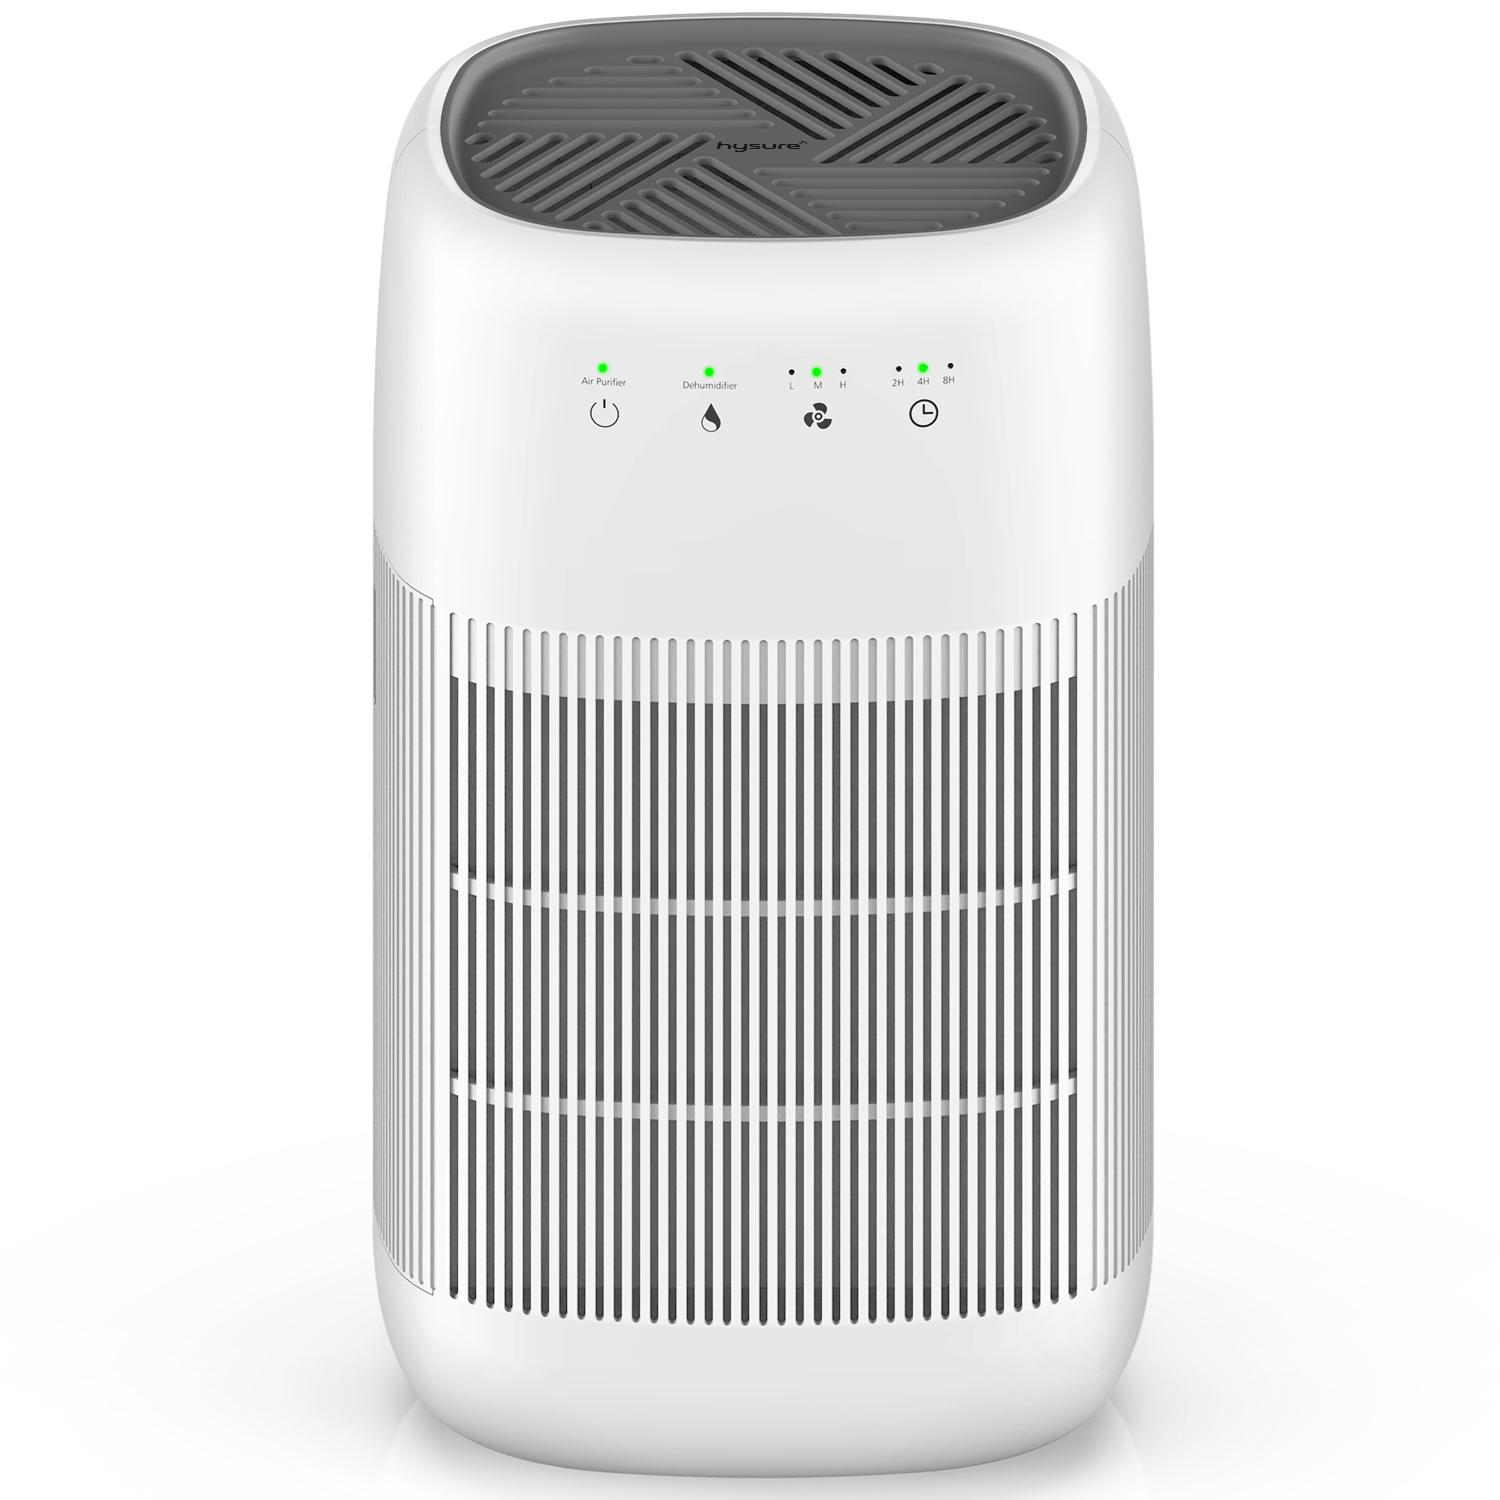 hysure Air Purifier Dehumidifier 2-in-1 For Home With HEPA Filter, Advanced Air Filtration